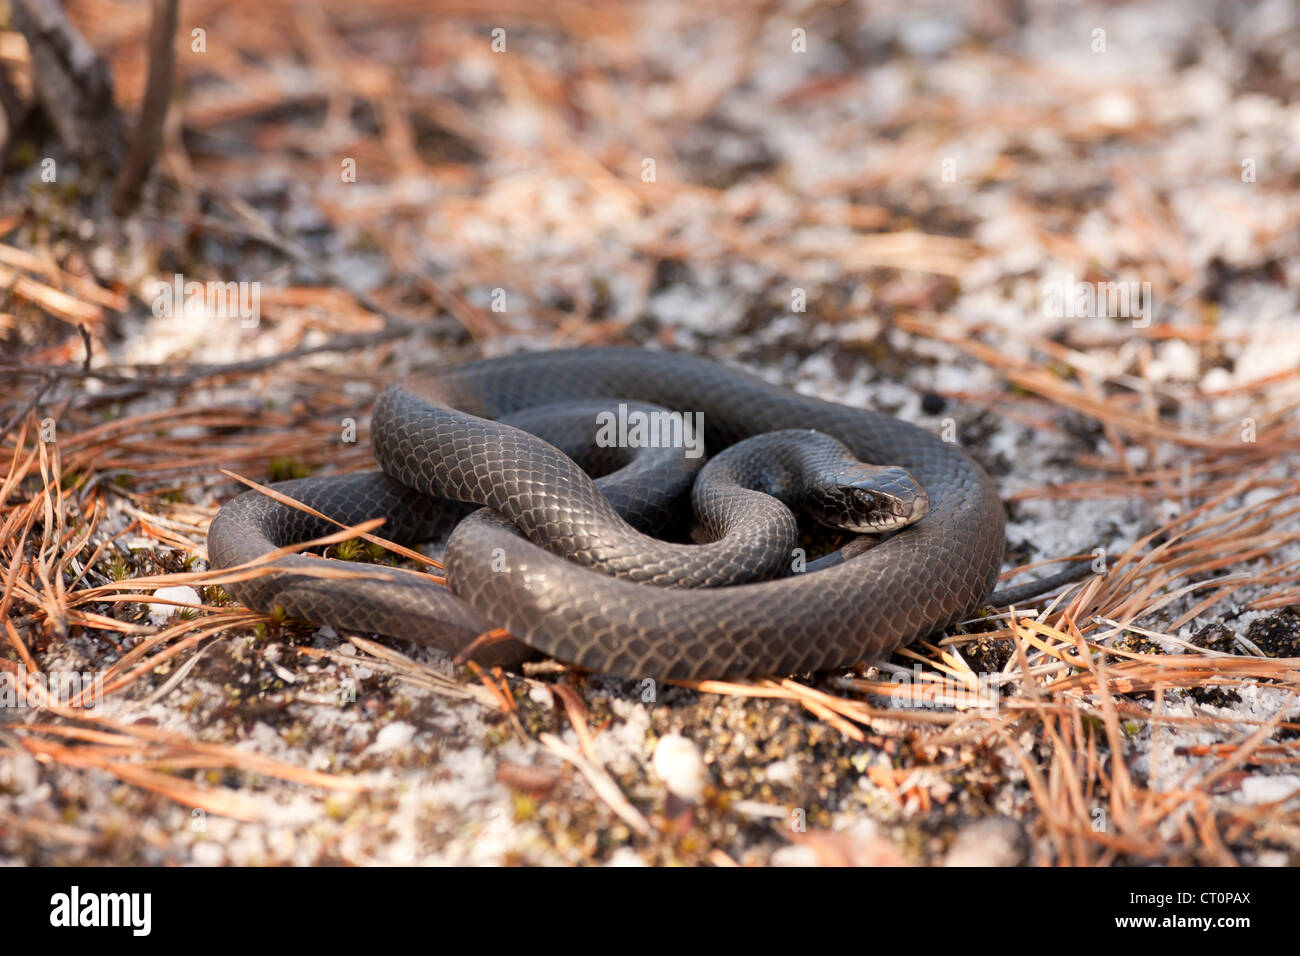 Young Northern Black Racer Coluber C Constrictor Snake